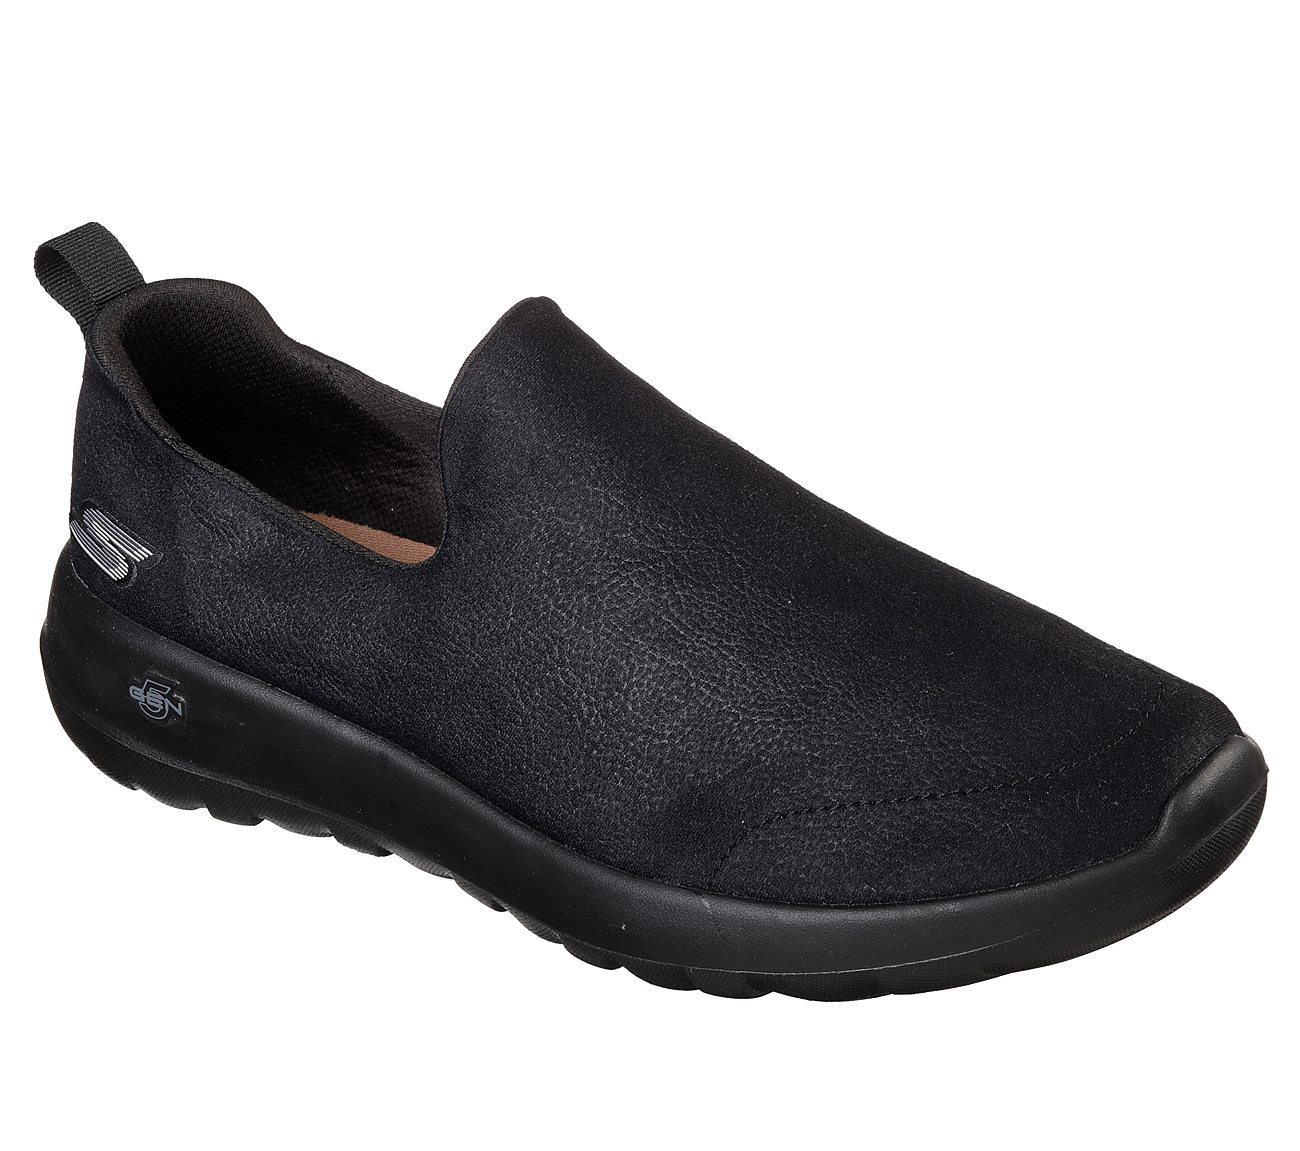 skechers go walk shoes skechers gowalk max - escalate. $54.00. write the first review. hover to LKBTGXK